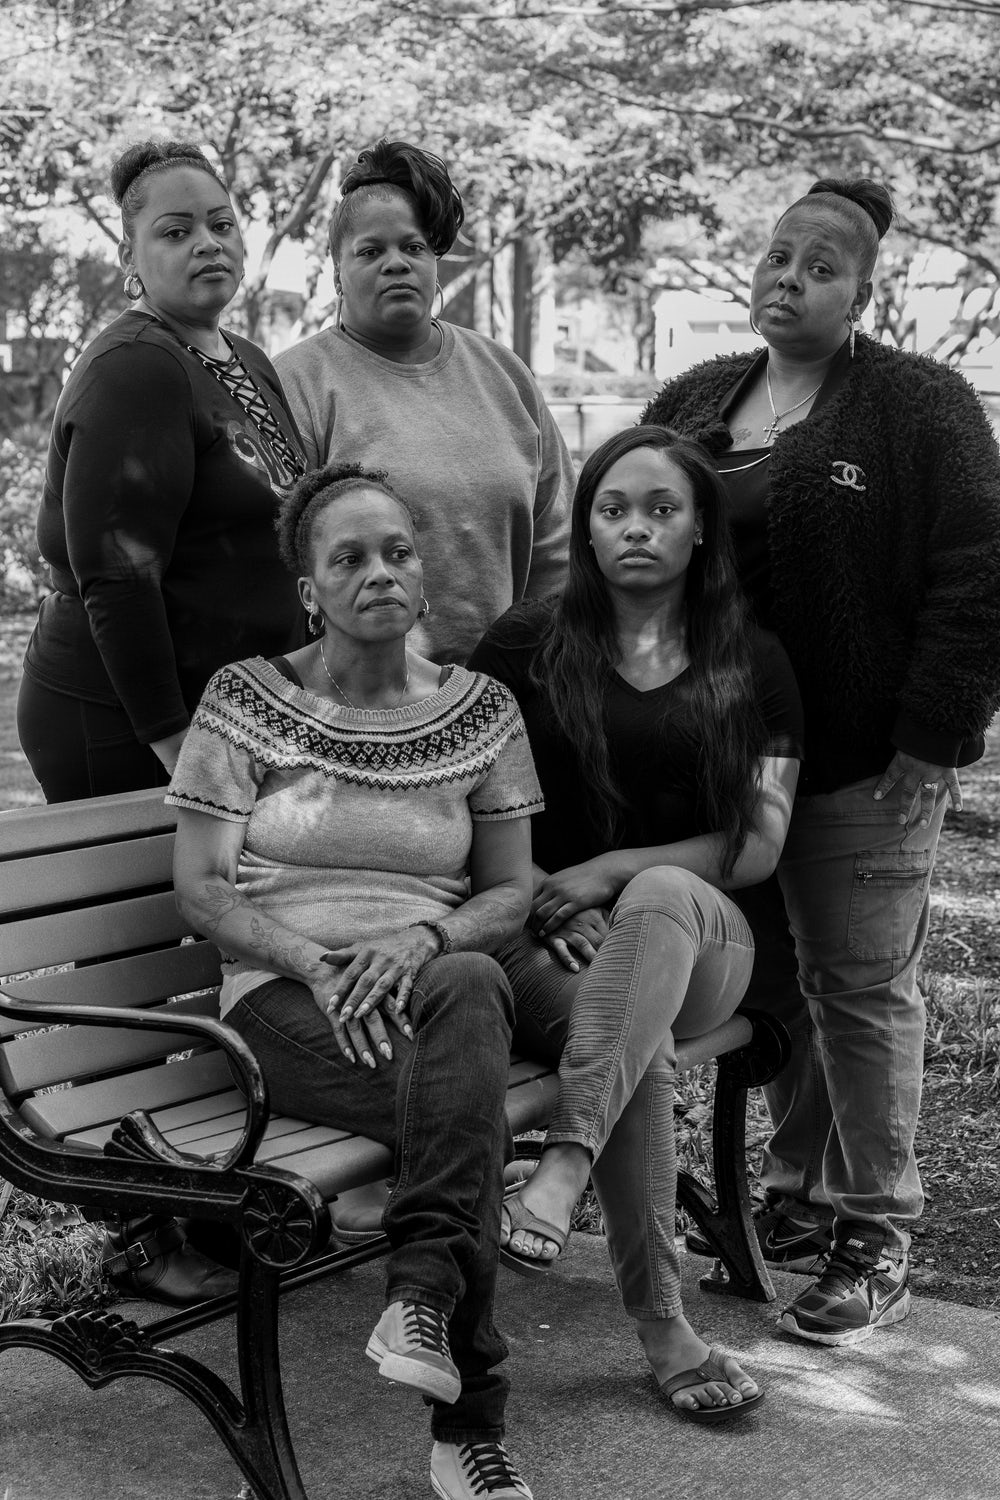 Clockwise from back left: Aisha Flood, Dawn Prince (a family friend), Rose Harden (an aunt of Jaqwan and Maurice), Ashley McLeod, and Cynthia Harden (the mother of Jaqwan and Maurice).